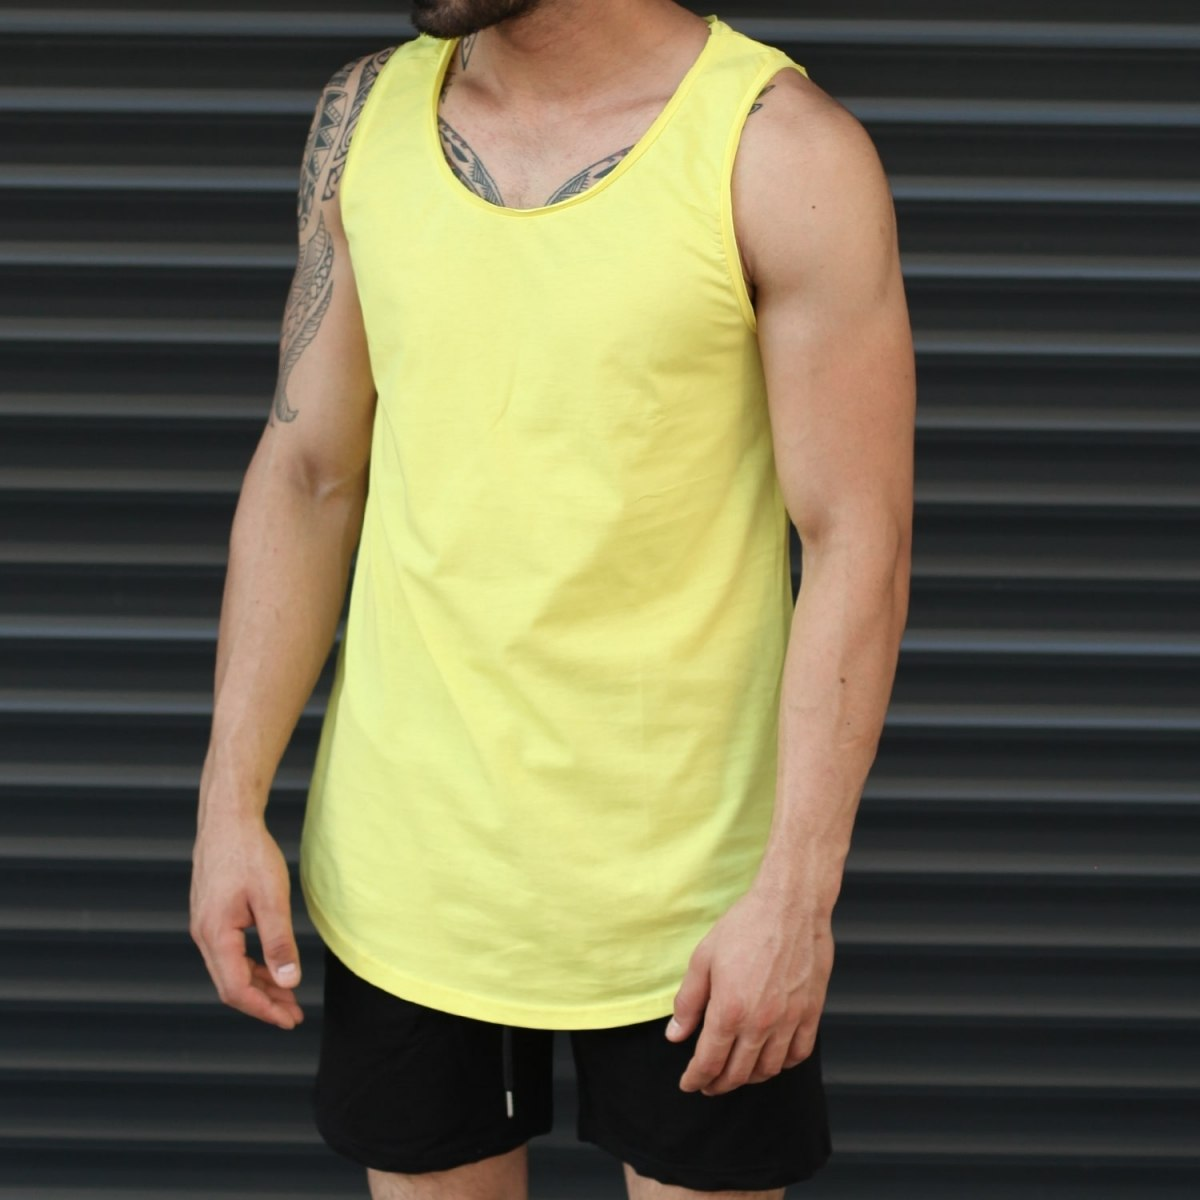 Men's Athletic Sleeveless Longline Tank Top Yellow